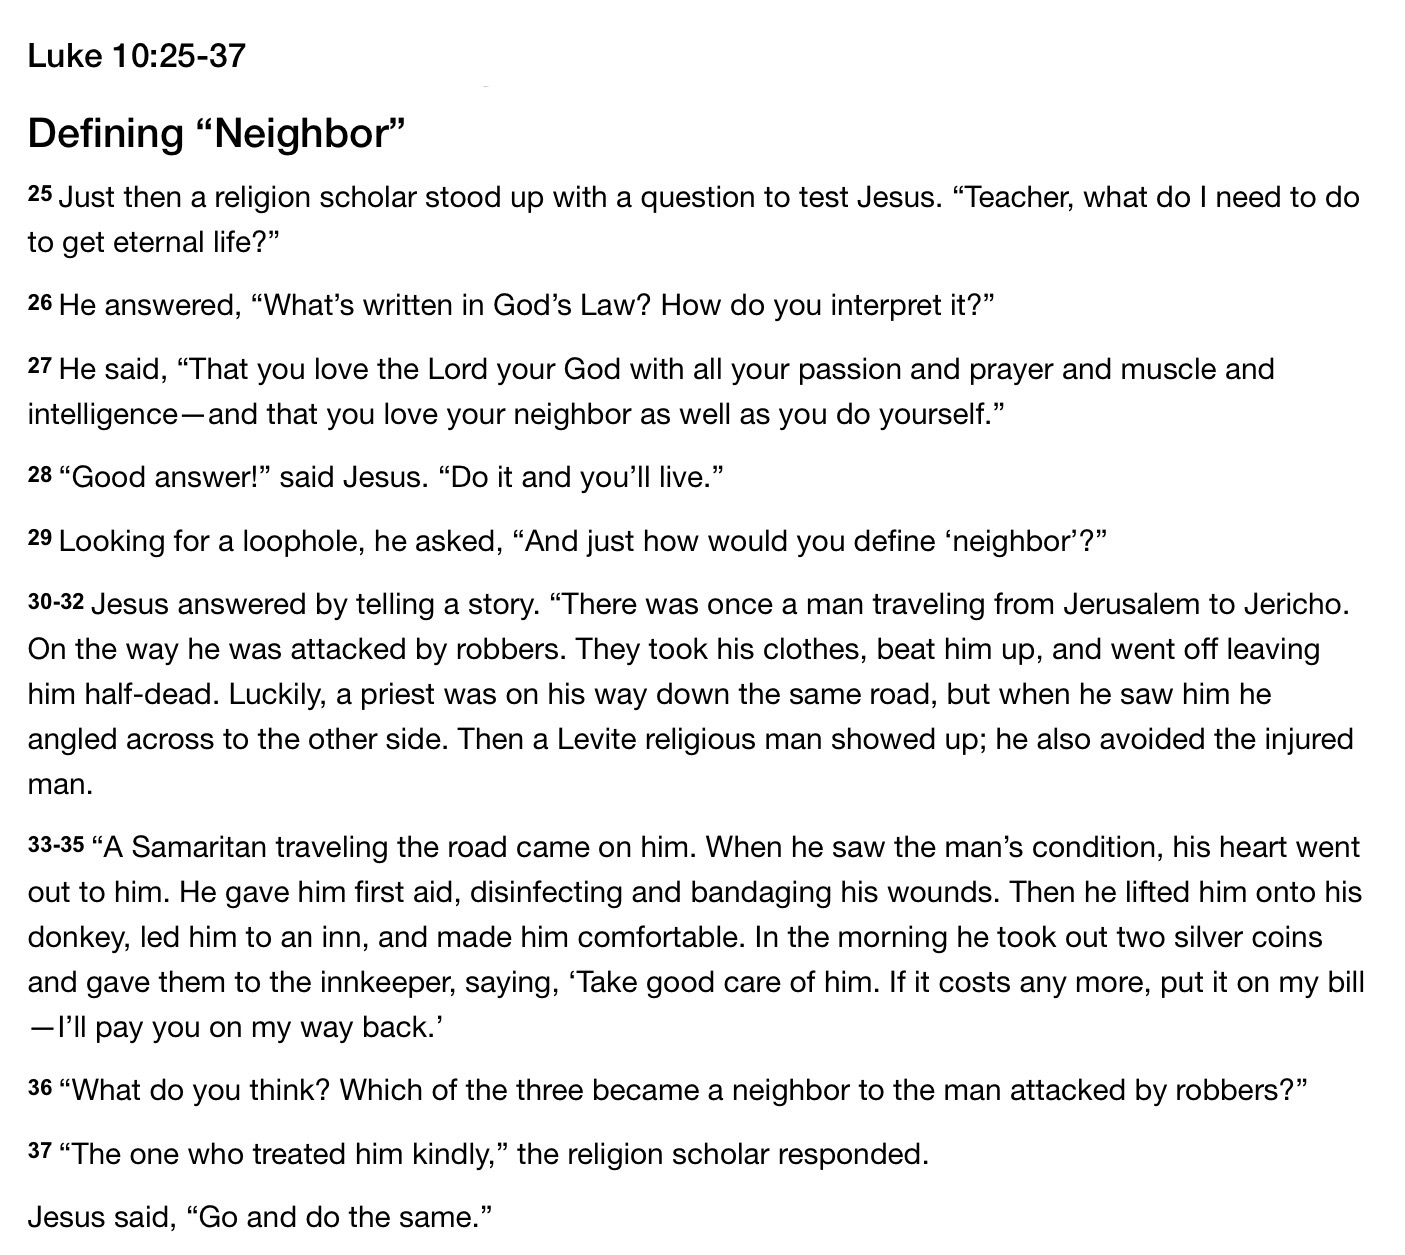 God's definition of neighbor